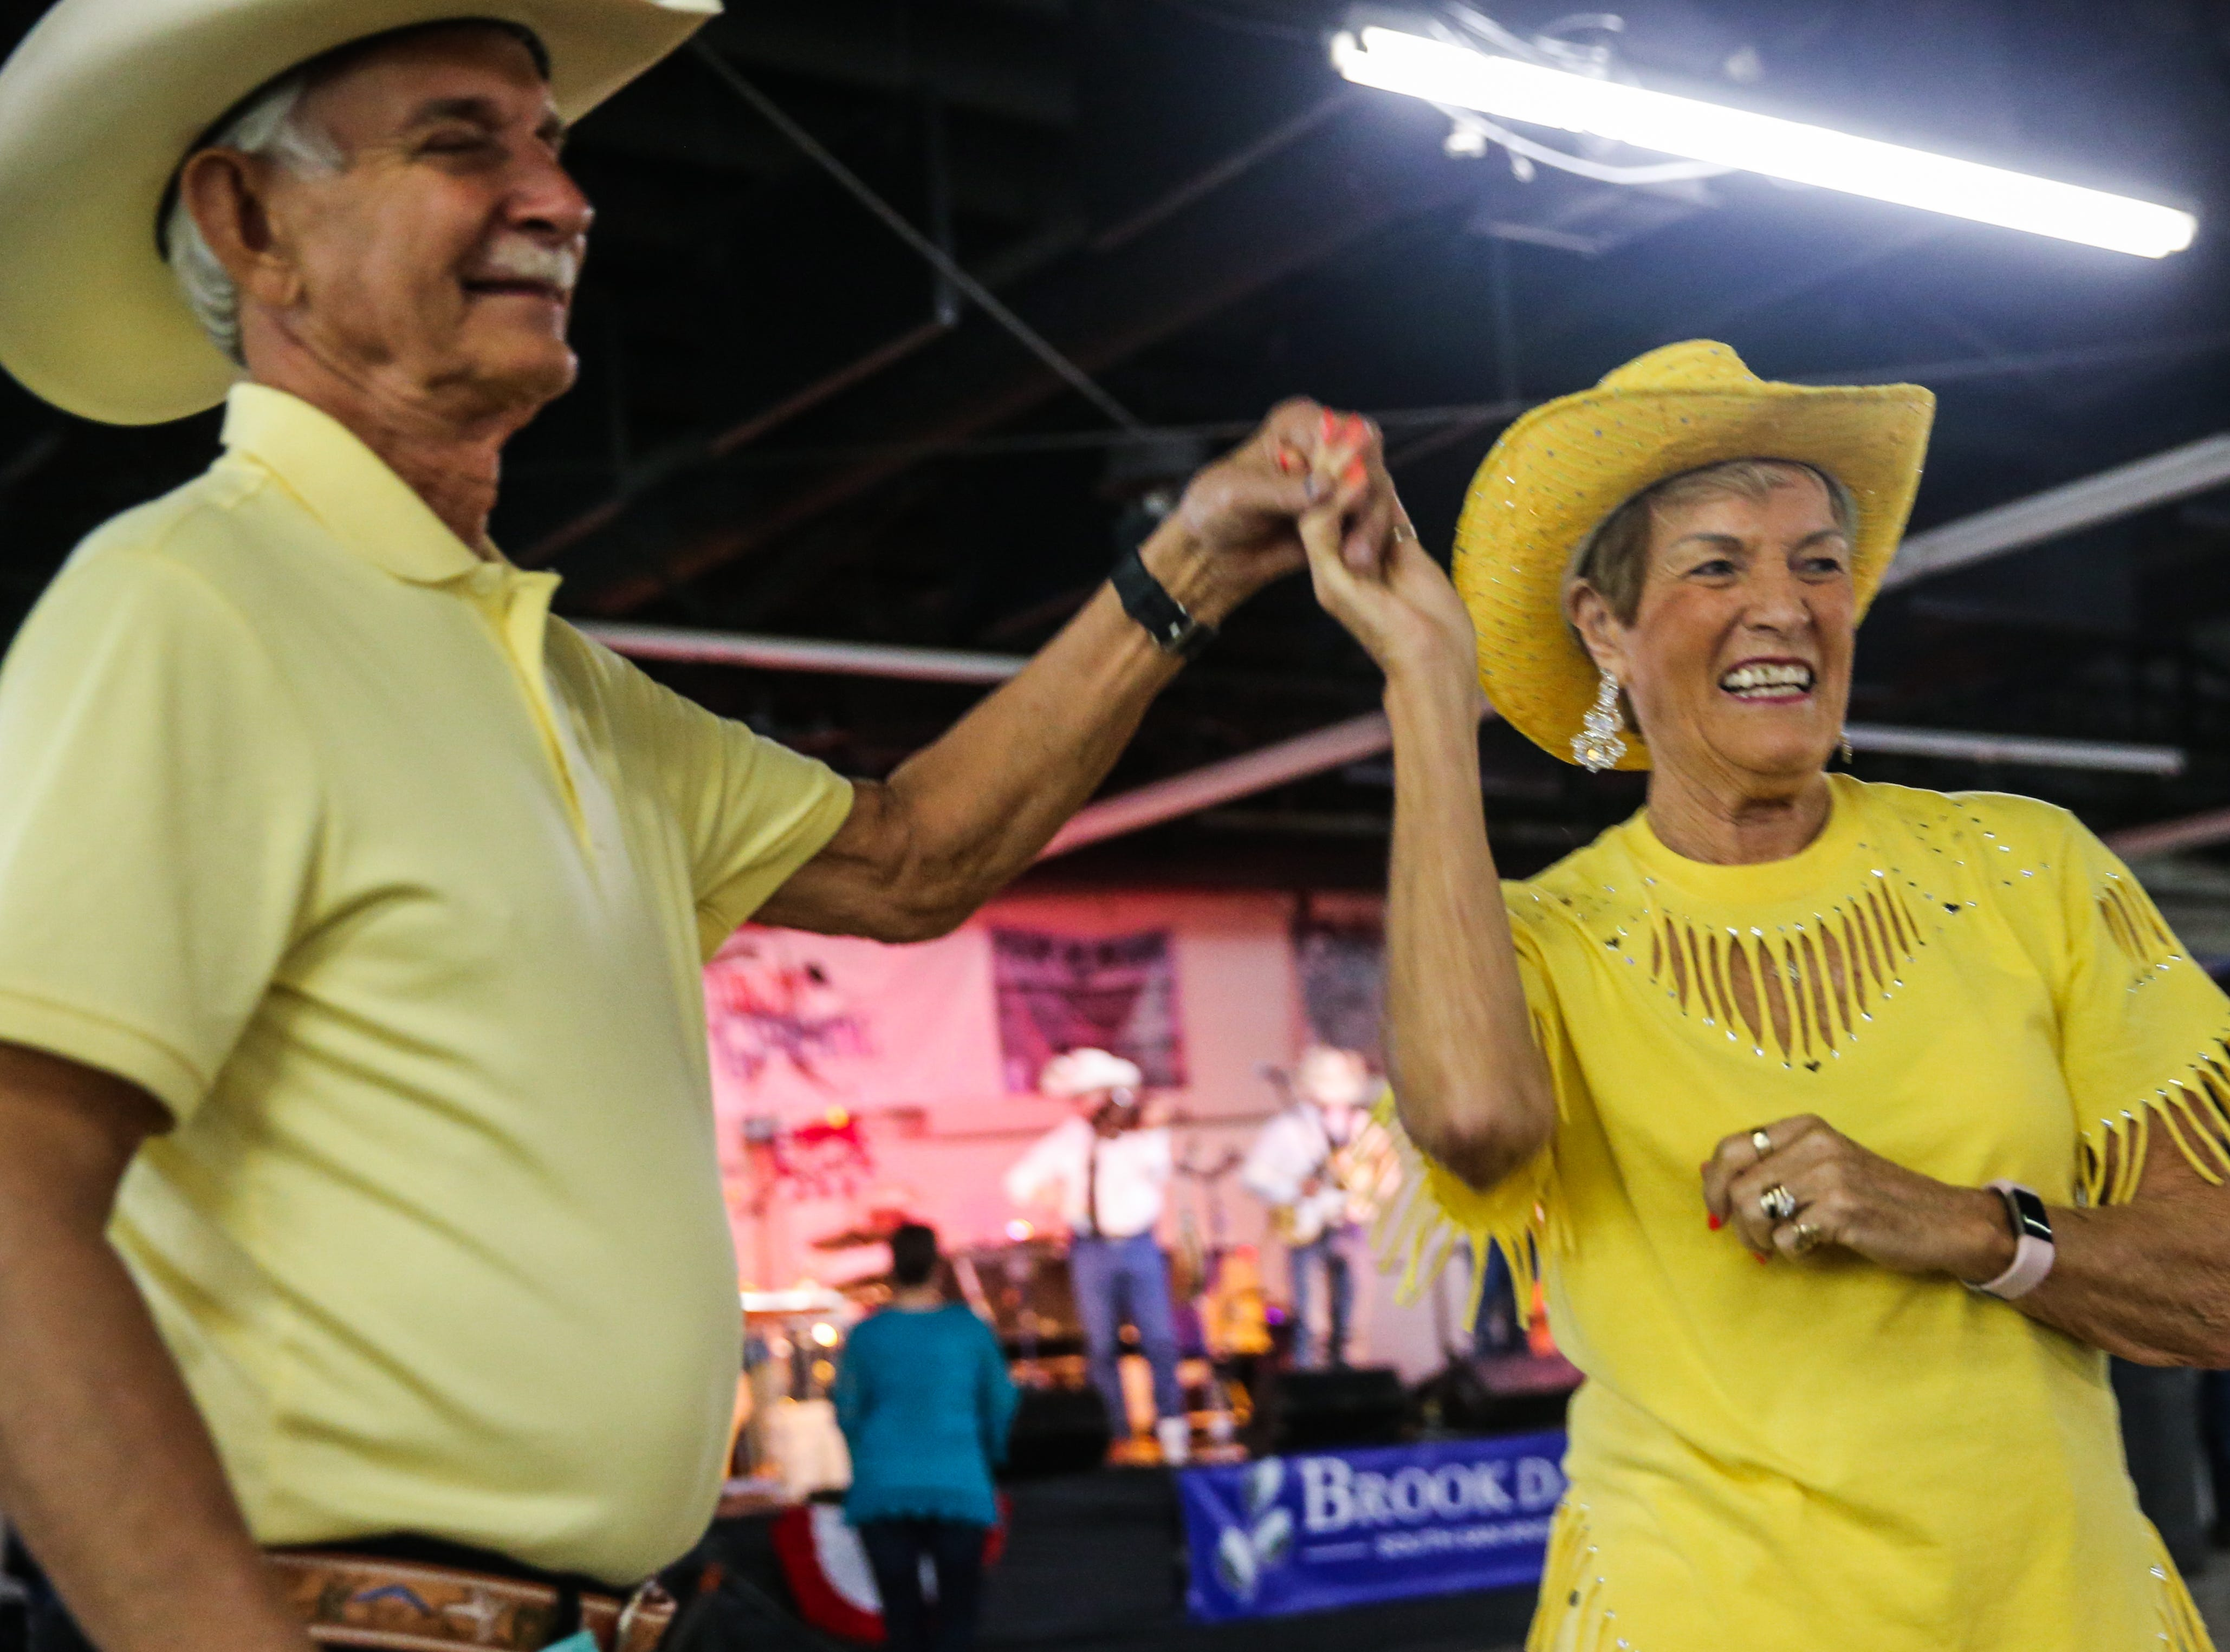 Floyd Harding spins Vera Meese during the 6th annual Cowboy Gathering Saturday, Sept. 8, 2018, at Wells Fargo Pavilion.